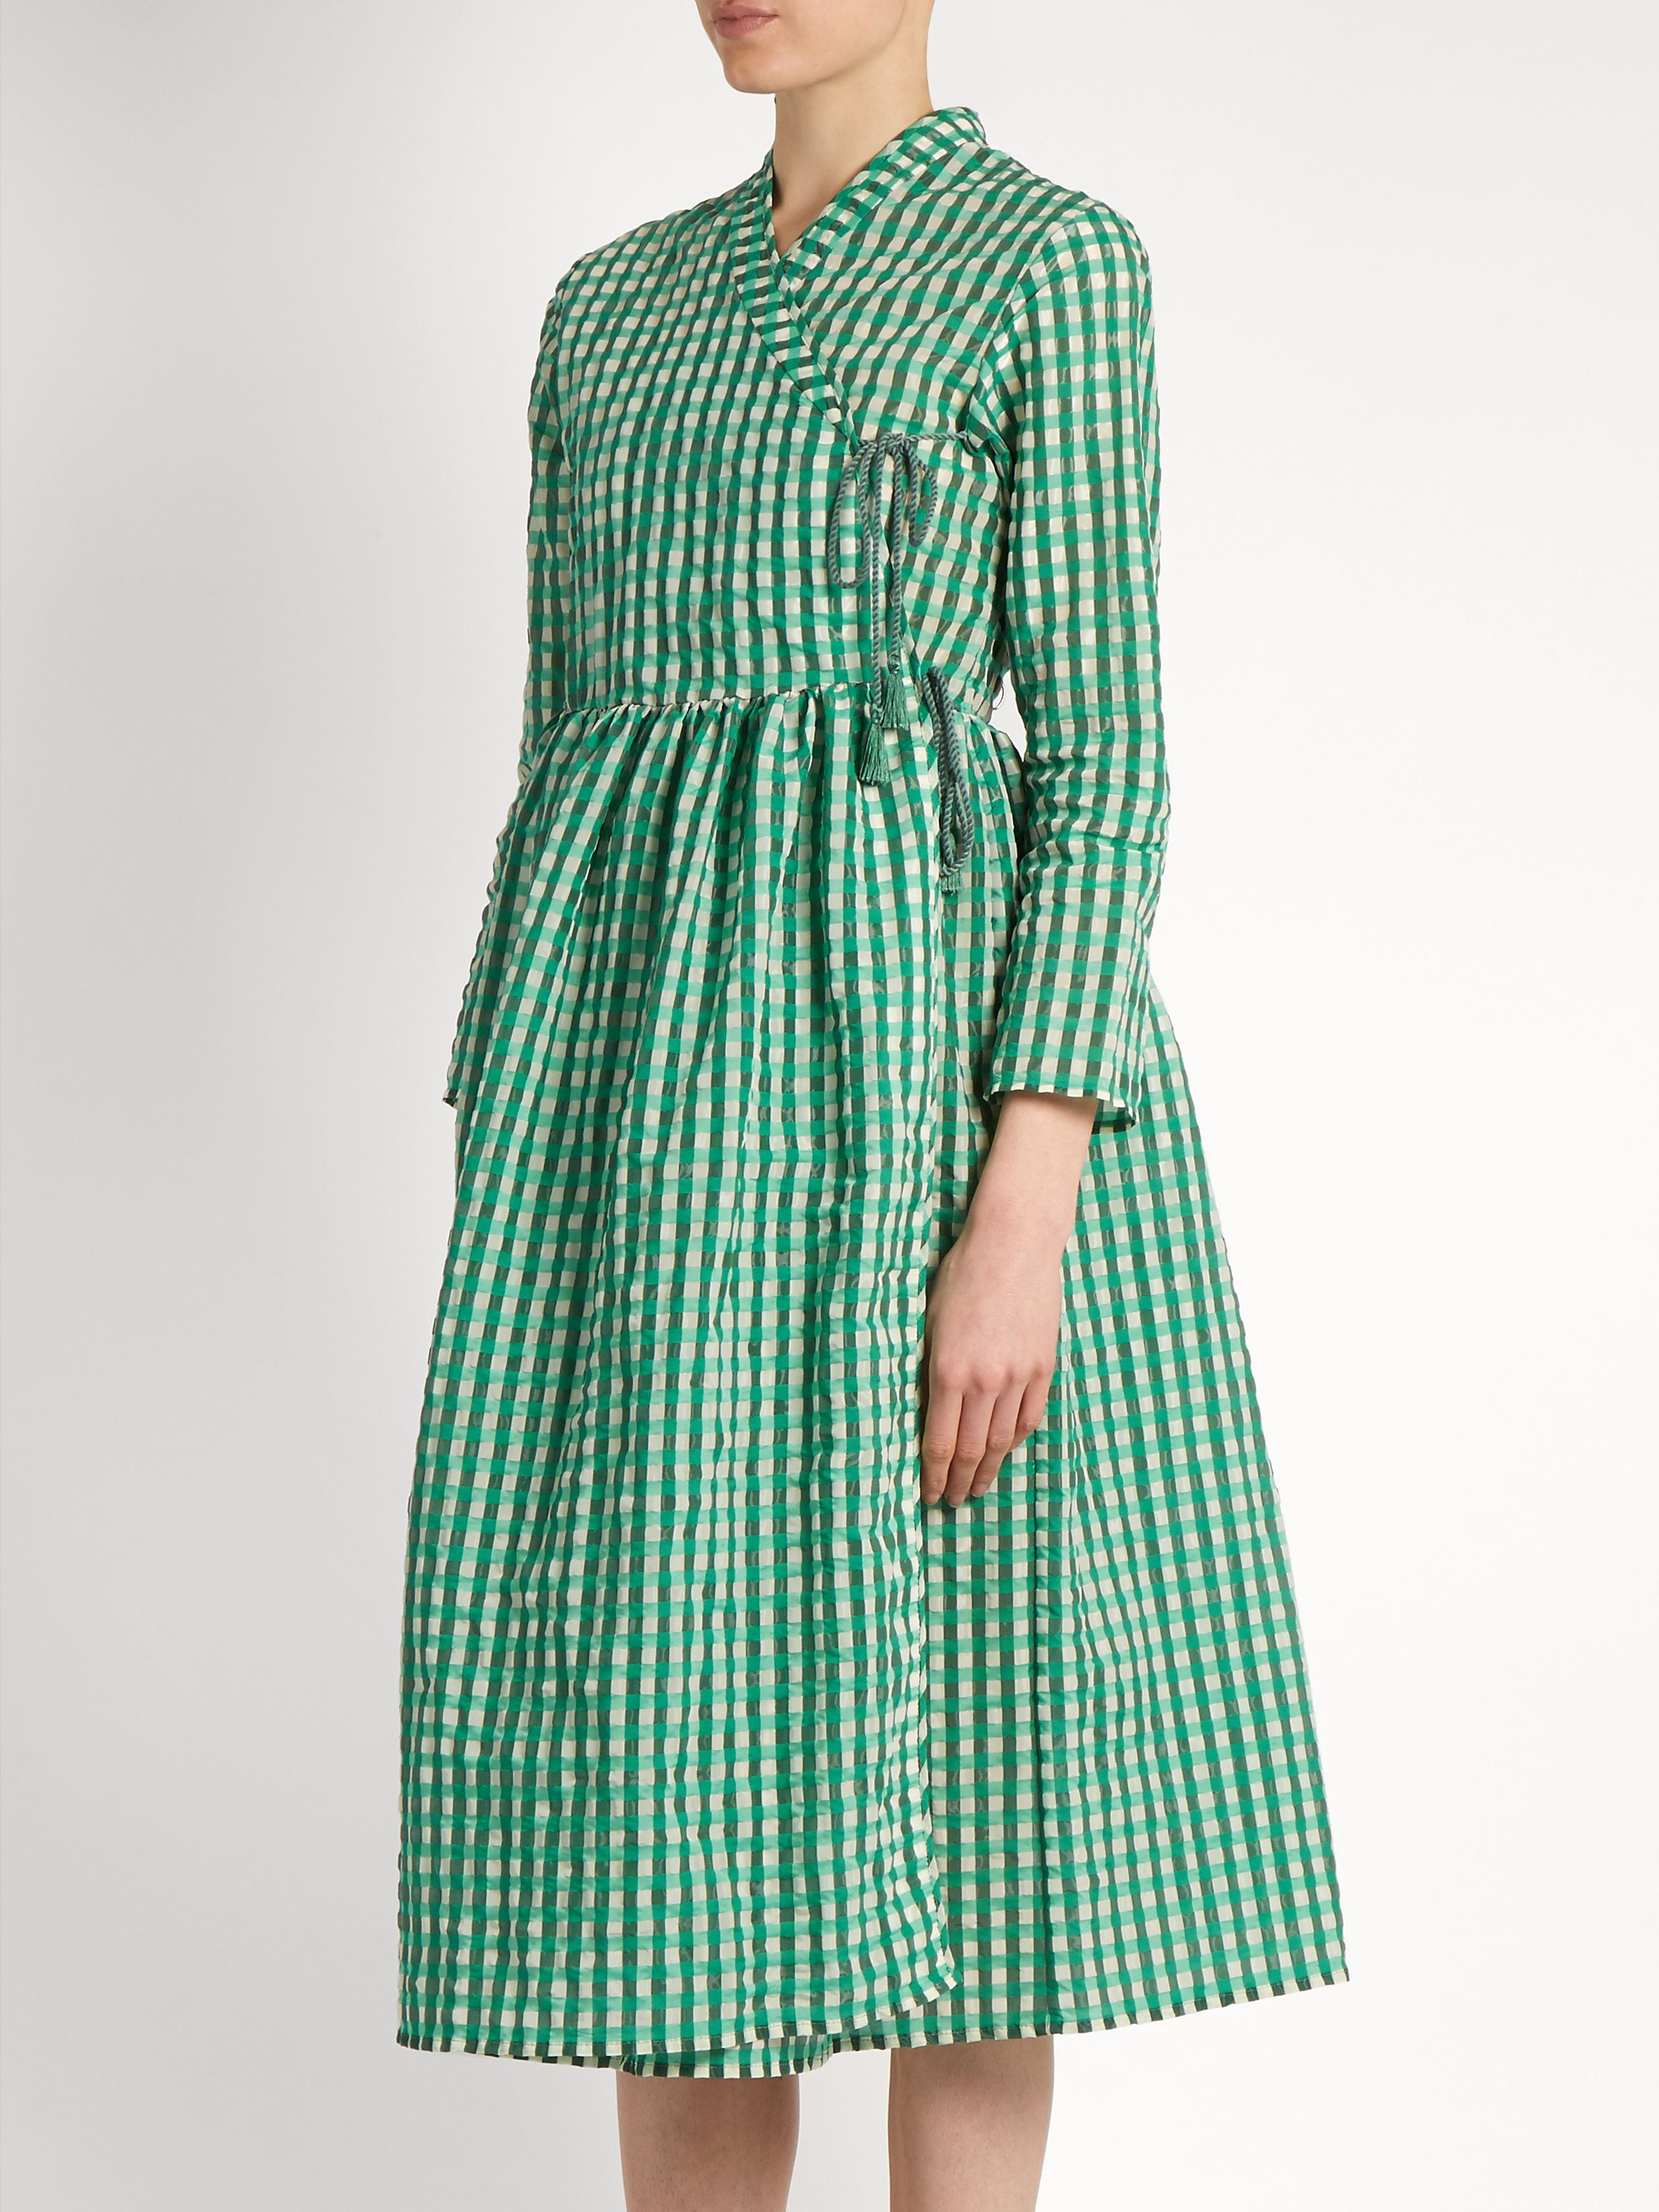 0ee82144f4e Hermione gingham dress